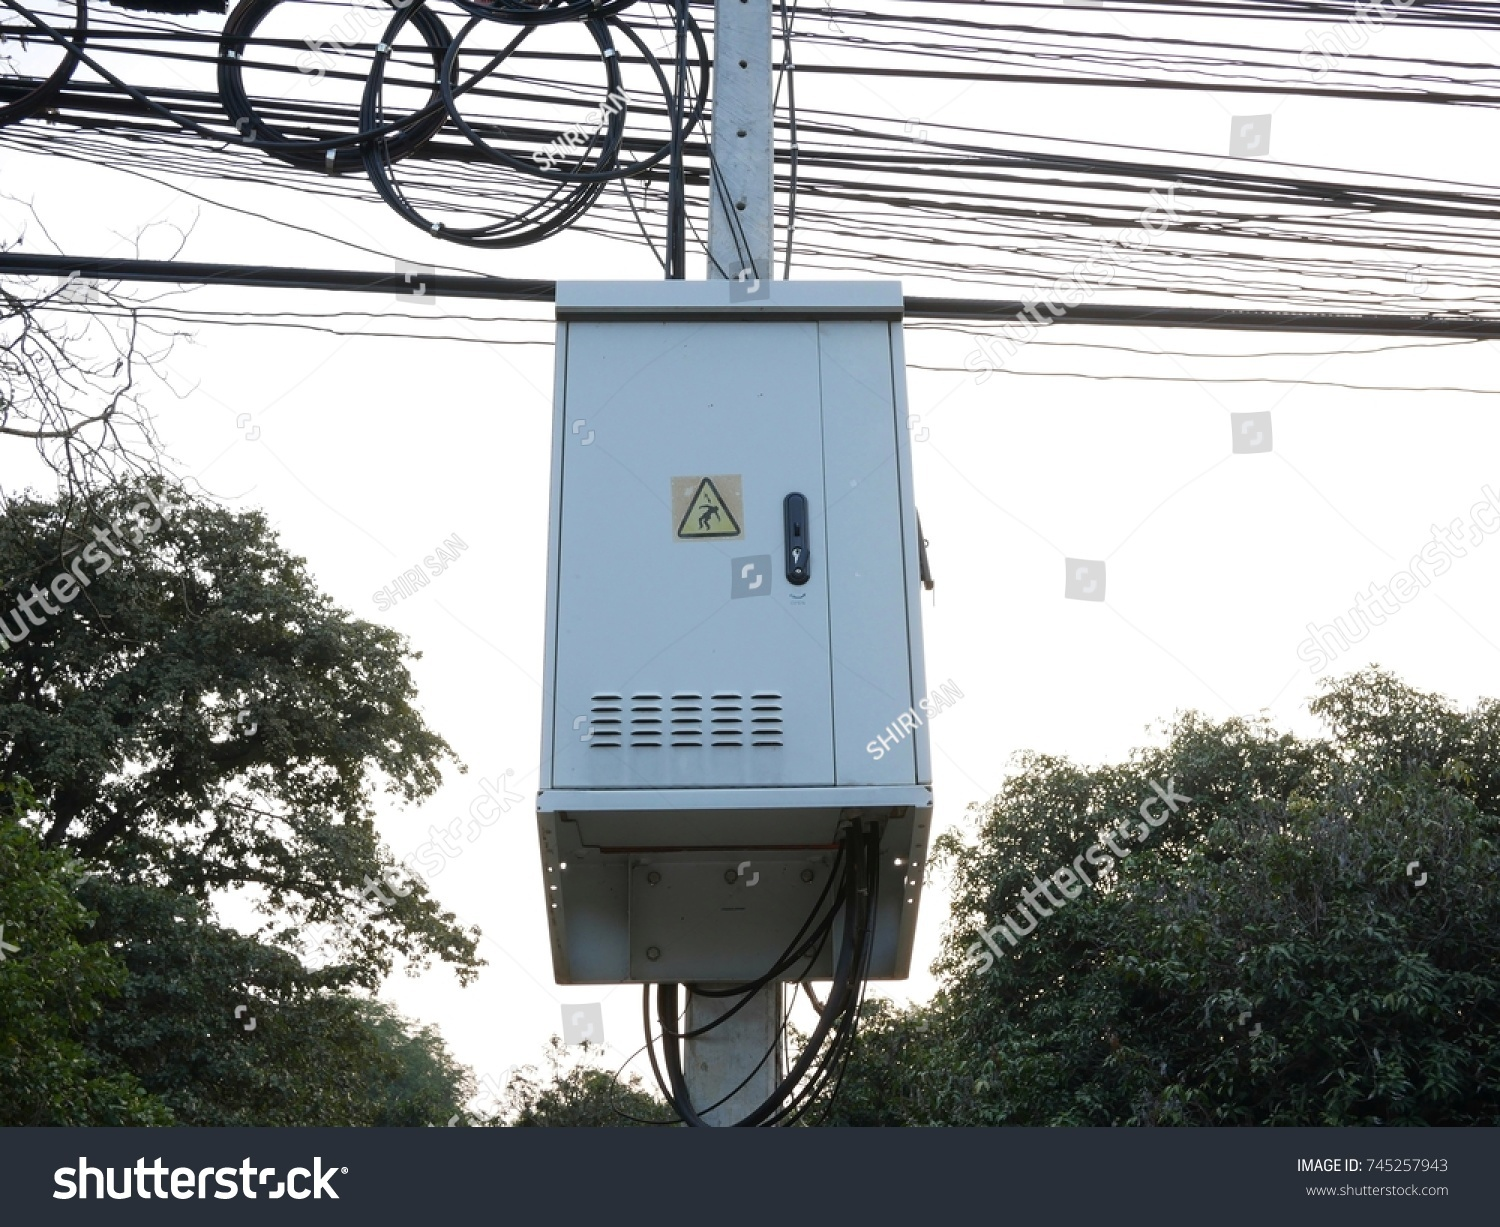 hight resolution of electric pole and transformers box